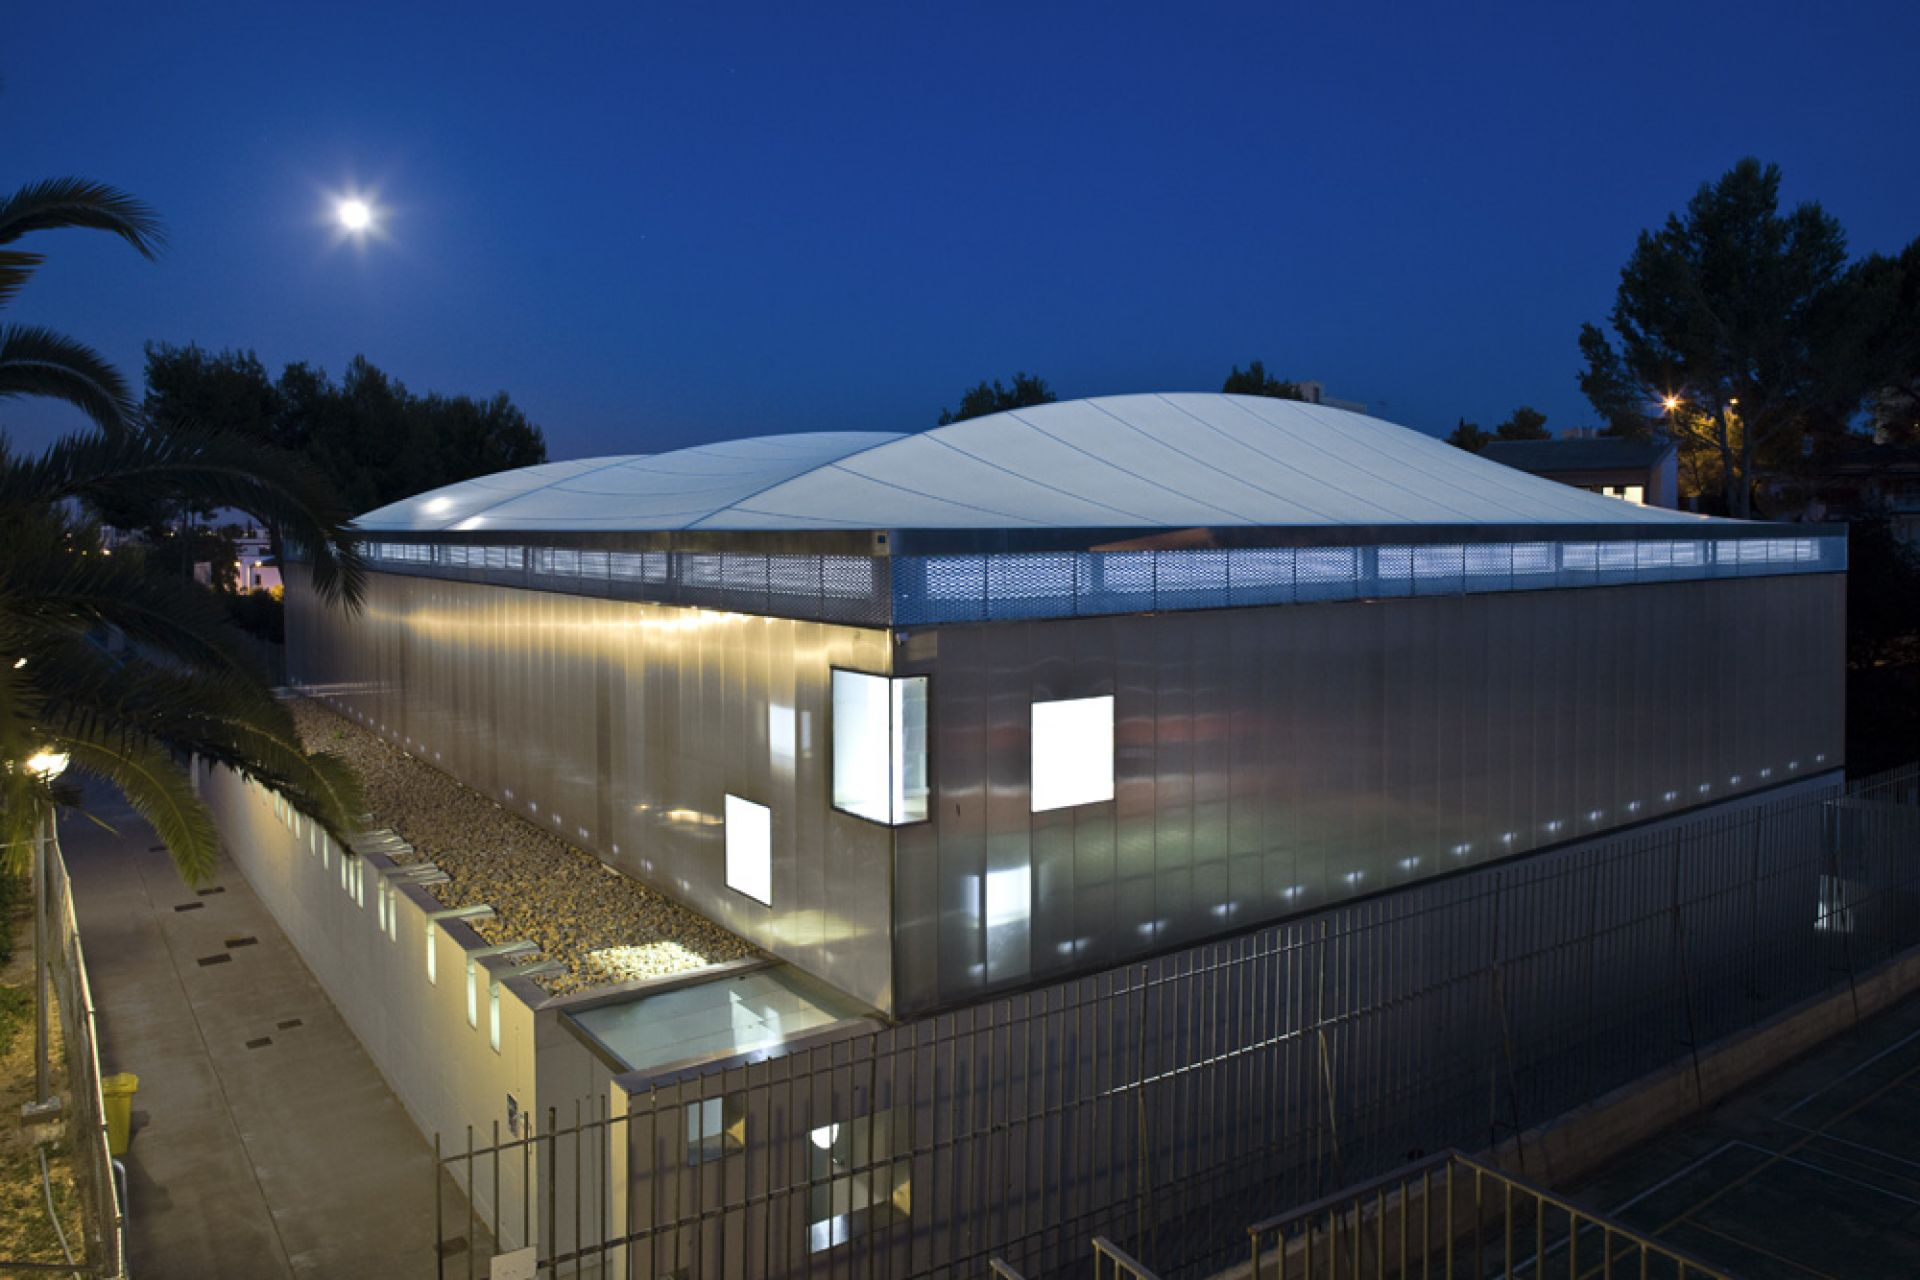 night image of the exterior of the sports center cover